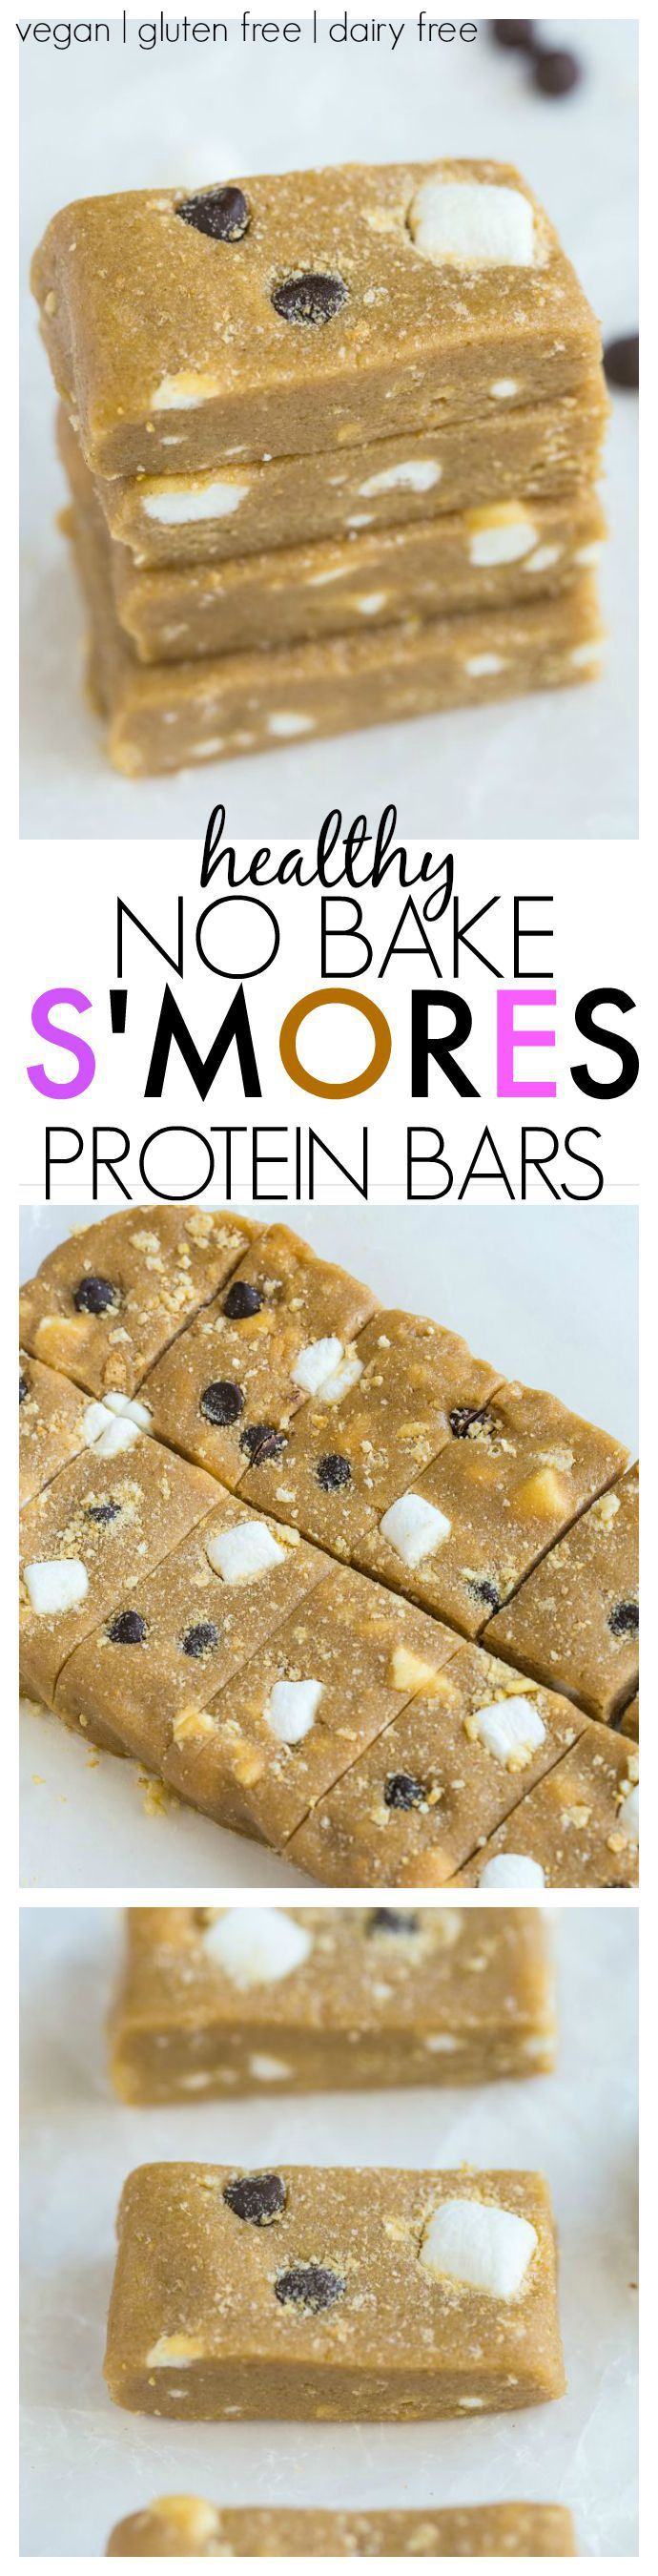 No Bake S'mores Protein Bars which are the perfect snack recipe to have on